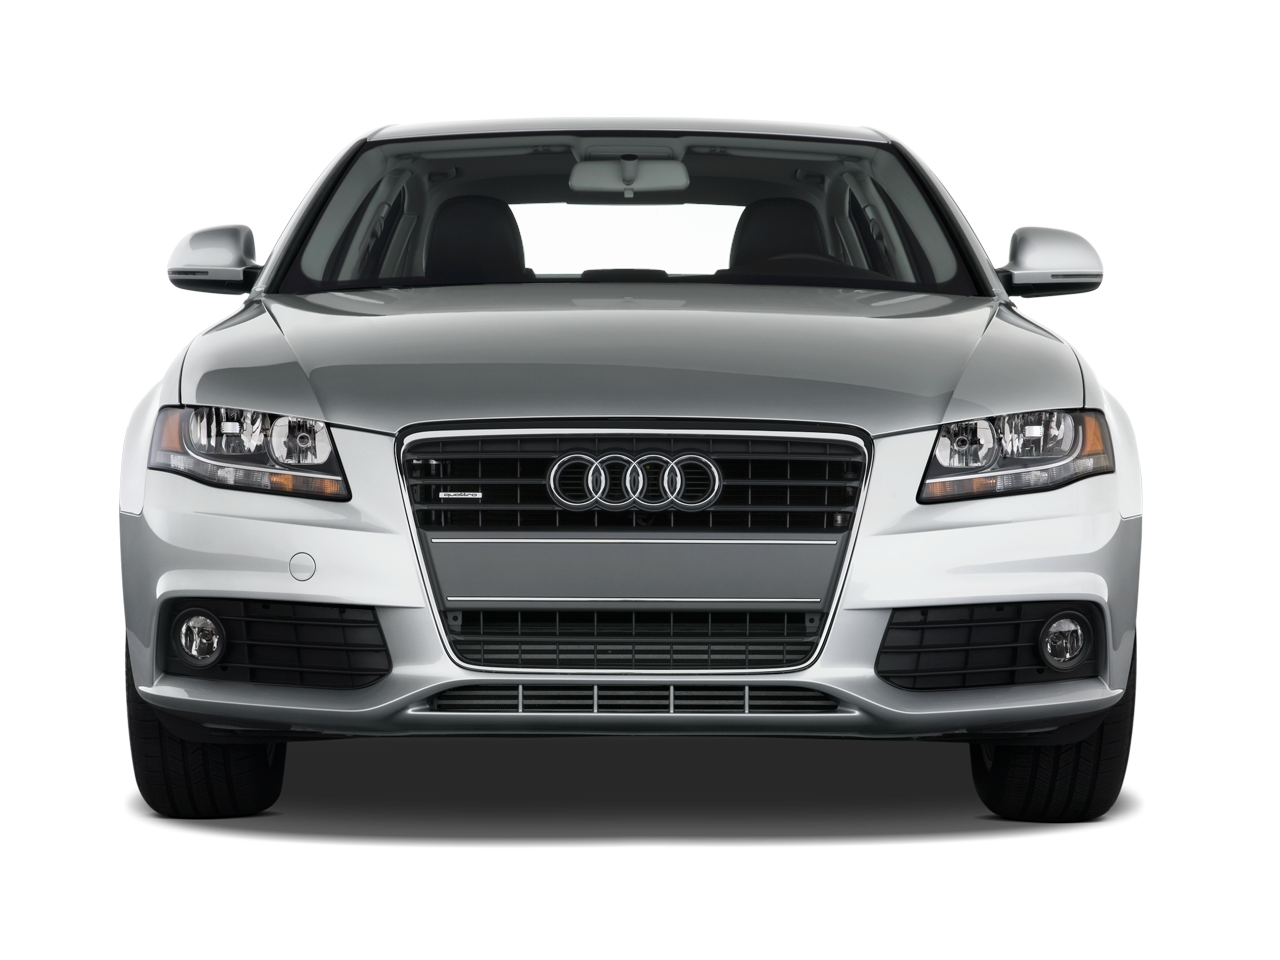 2009 audi a4 avant latest news reviews and auto show coverage automobile magazine. Black Bedroom Furniture Sets. Home Design Ideas